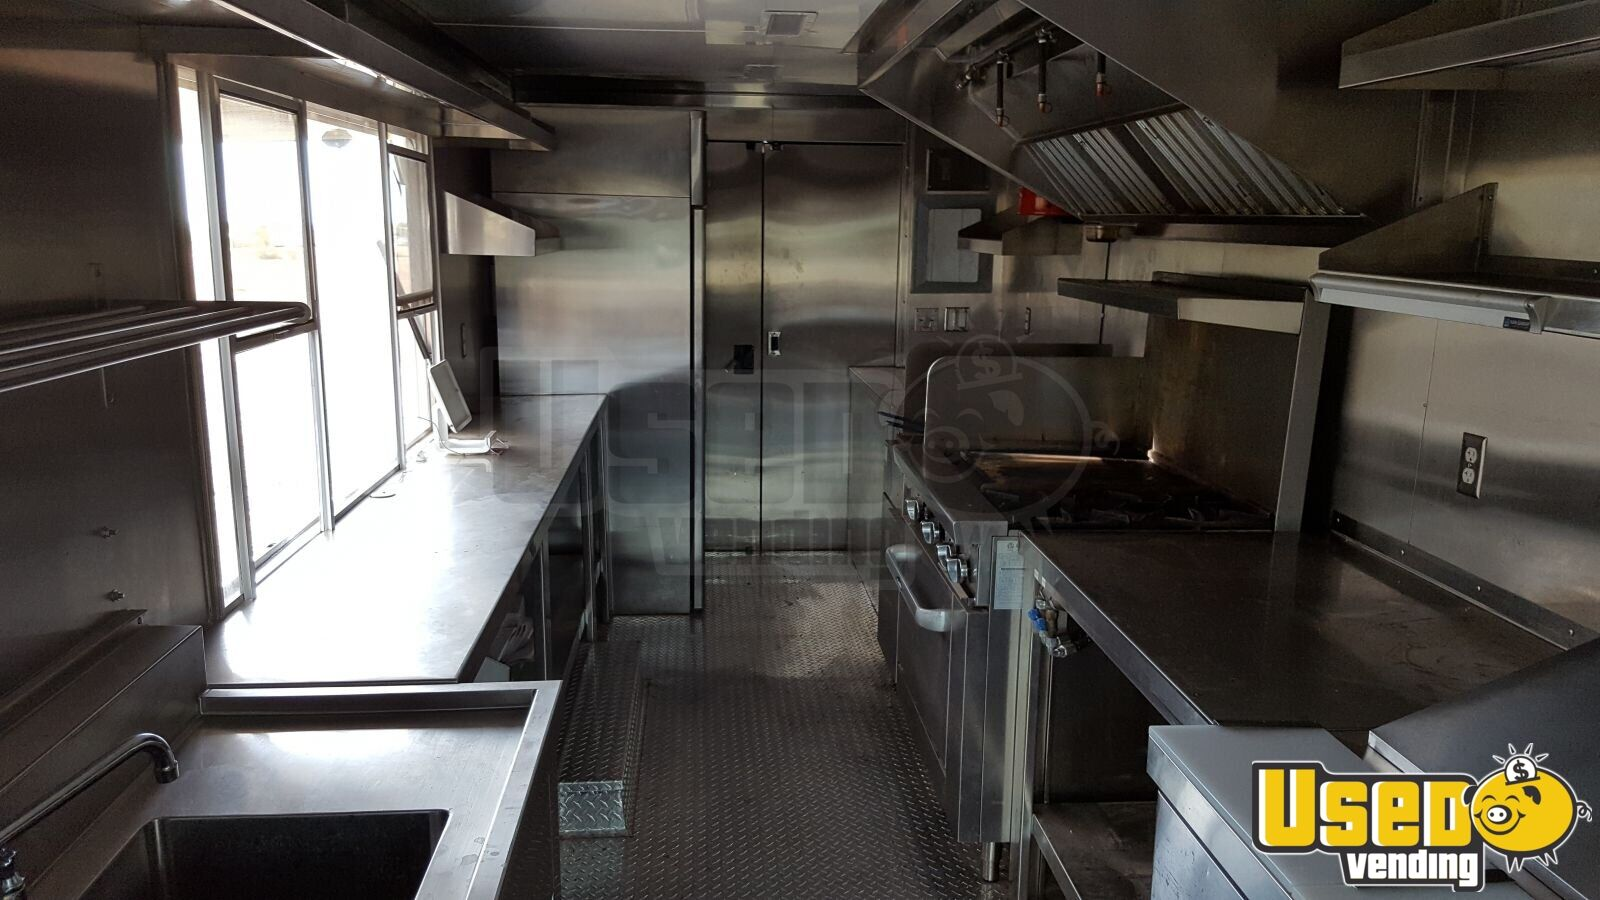 2000 Chevy Workhorse All-purpose Food Truck Stainless Steel Wall Covers Arizona Gas Engine for Sale - 4